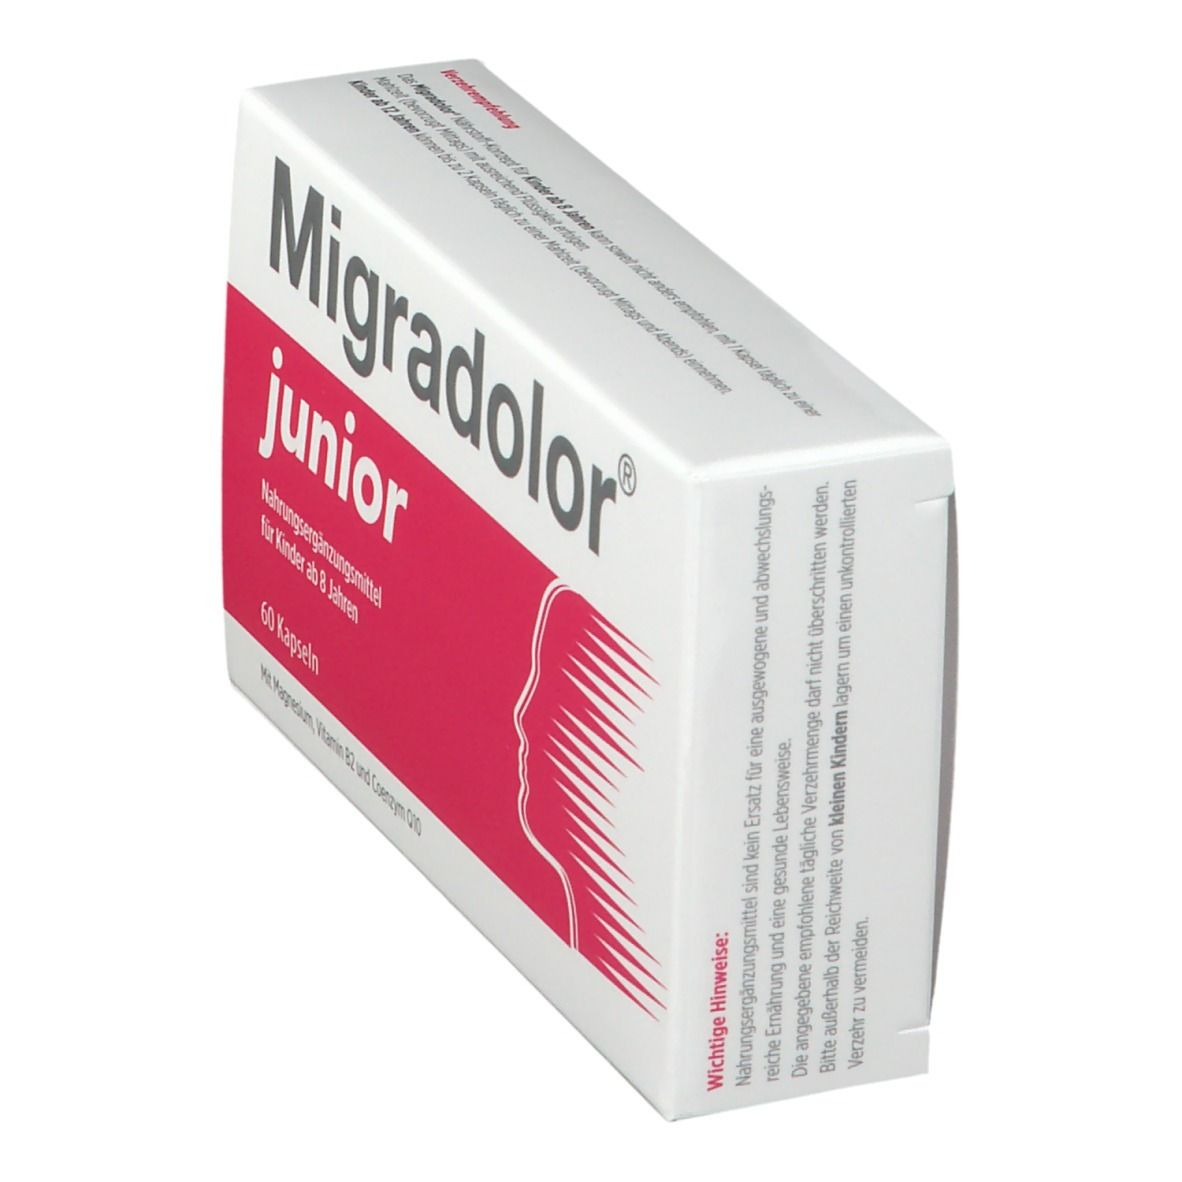 Migradolor® junior